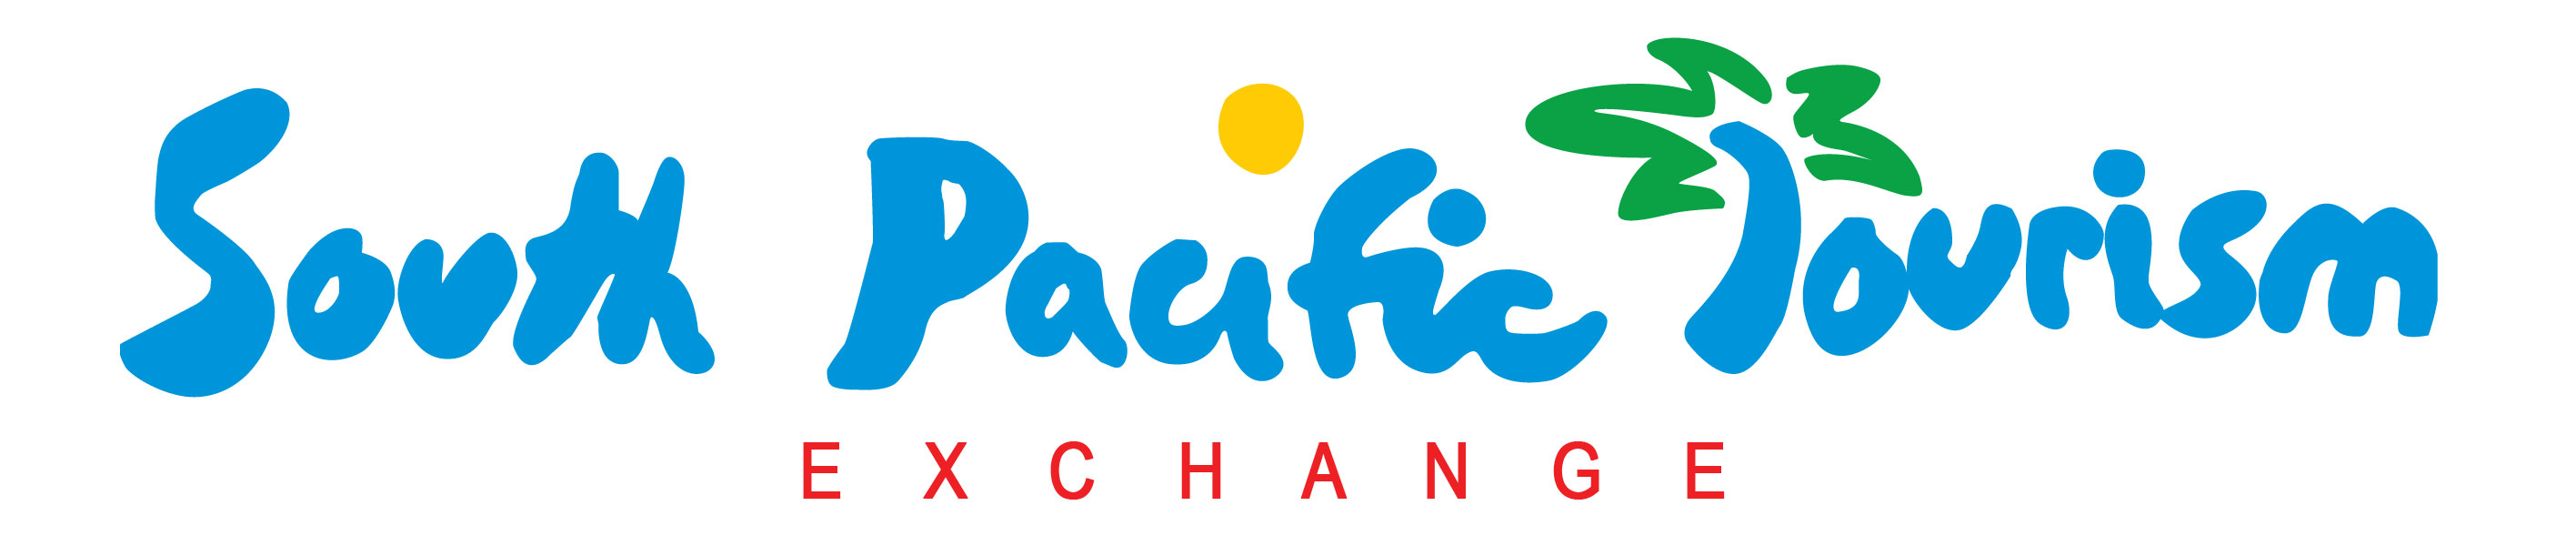 SPTO-Exchange-Brand-Logo